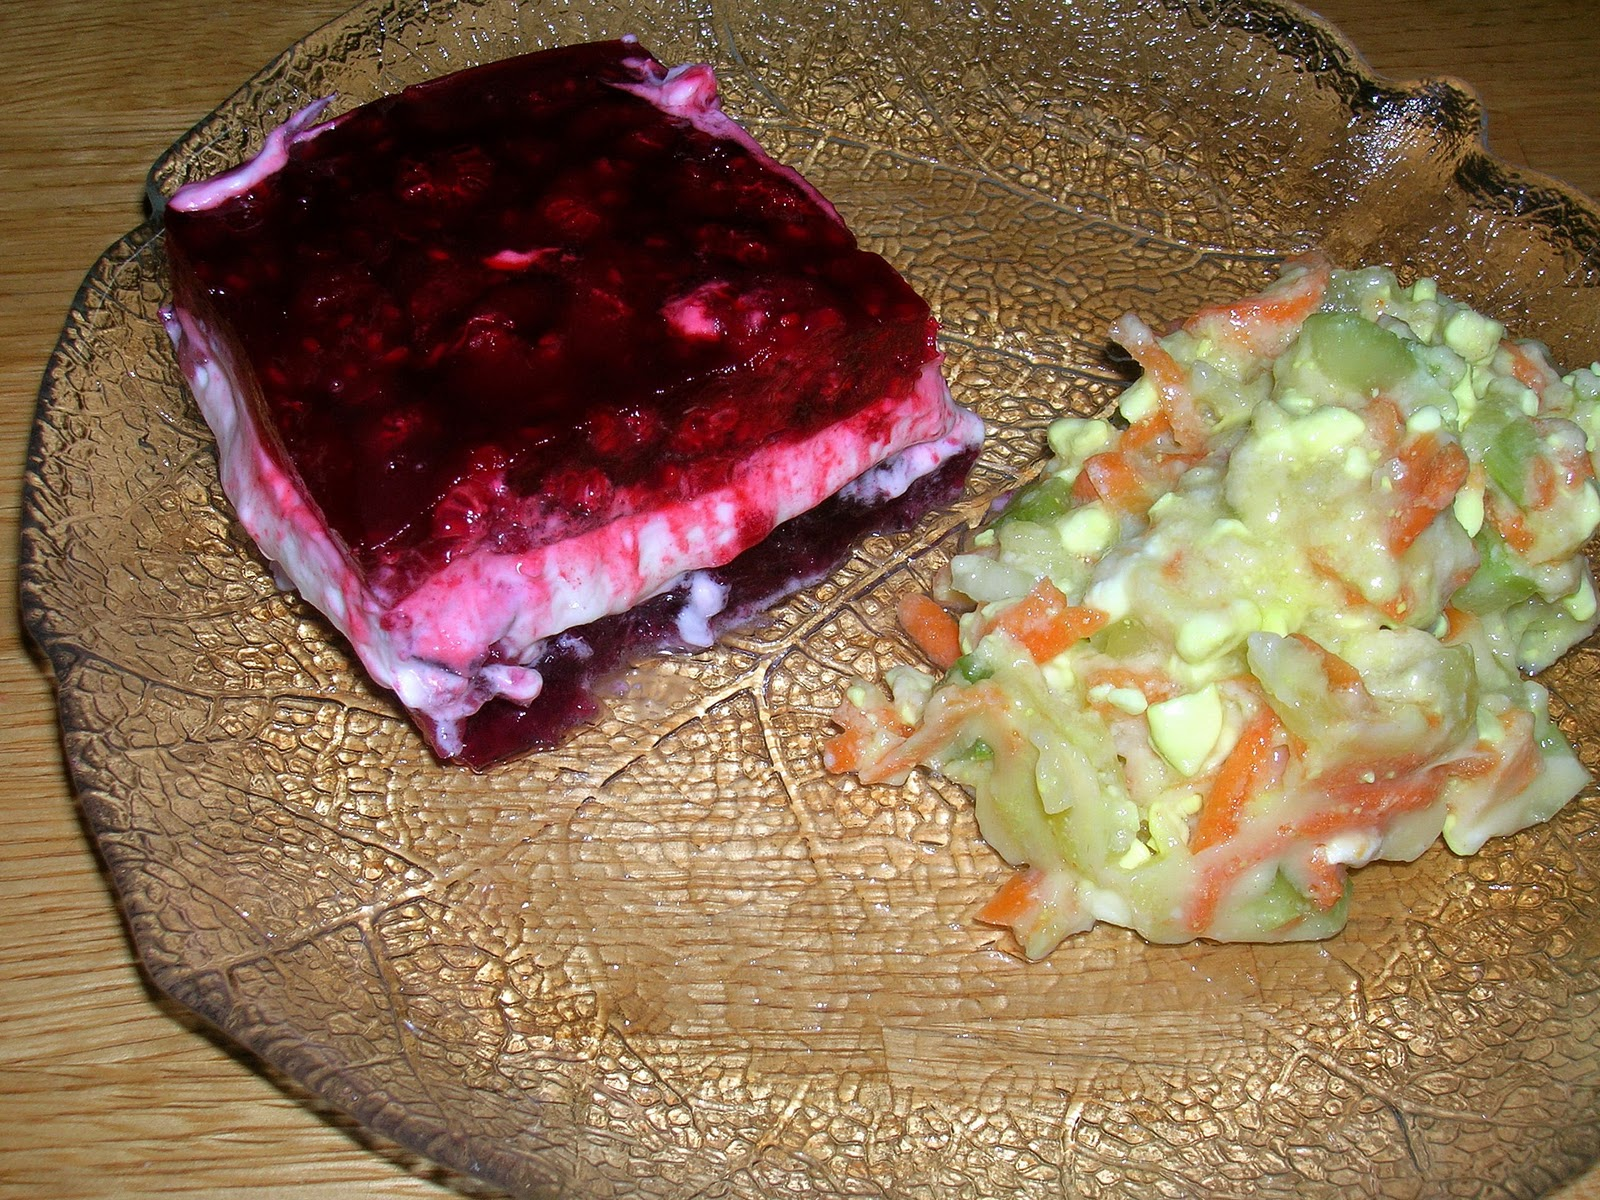 Swell My Mountain Garden Gleanings Red And Green Jellied Salads Interior Design Ideas Clesiryabchikinfo